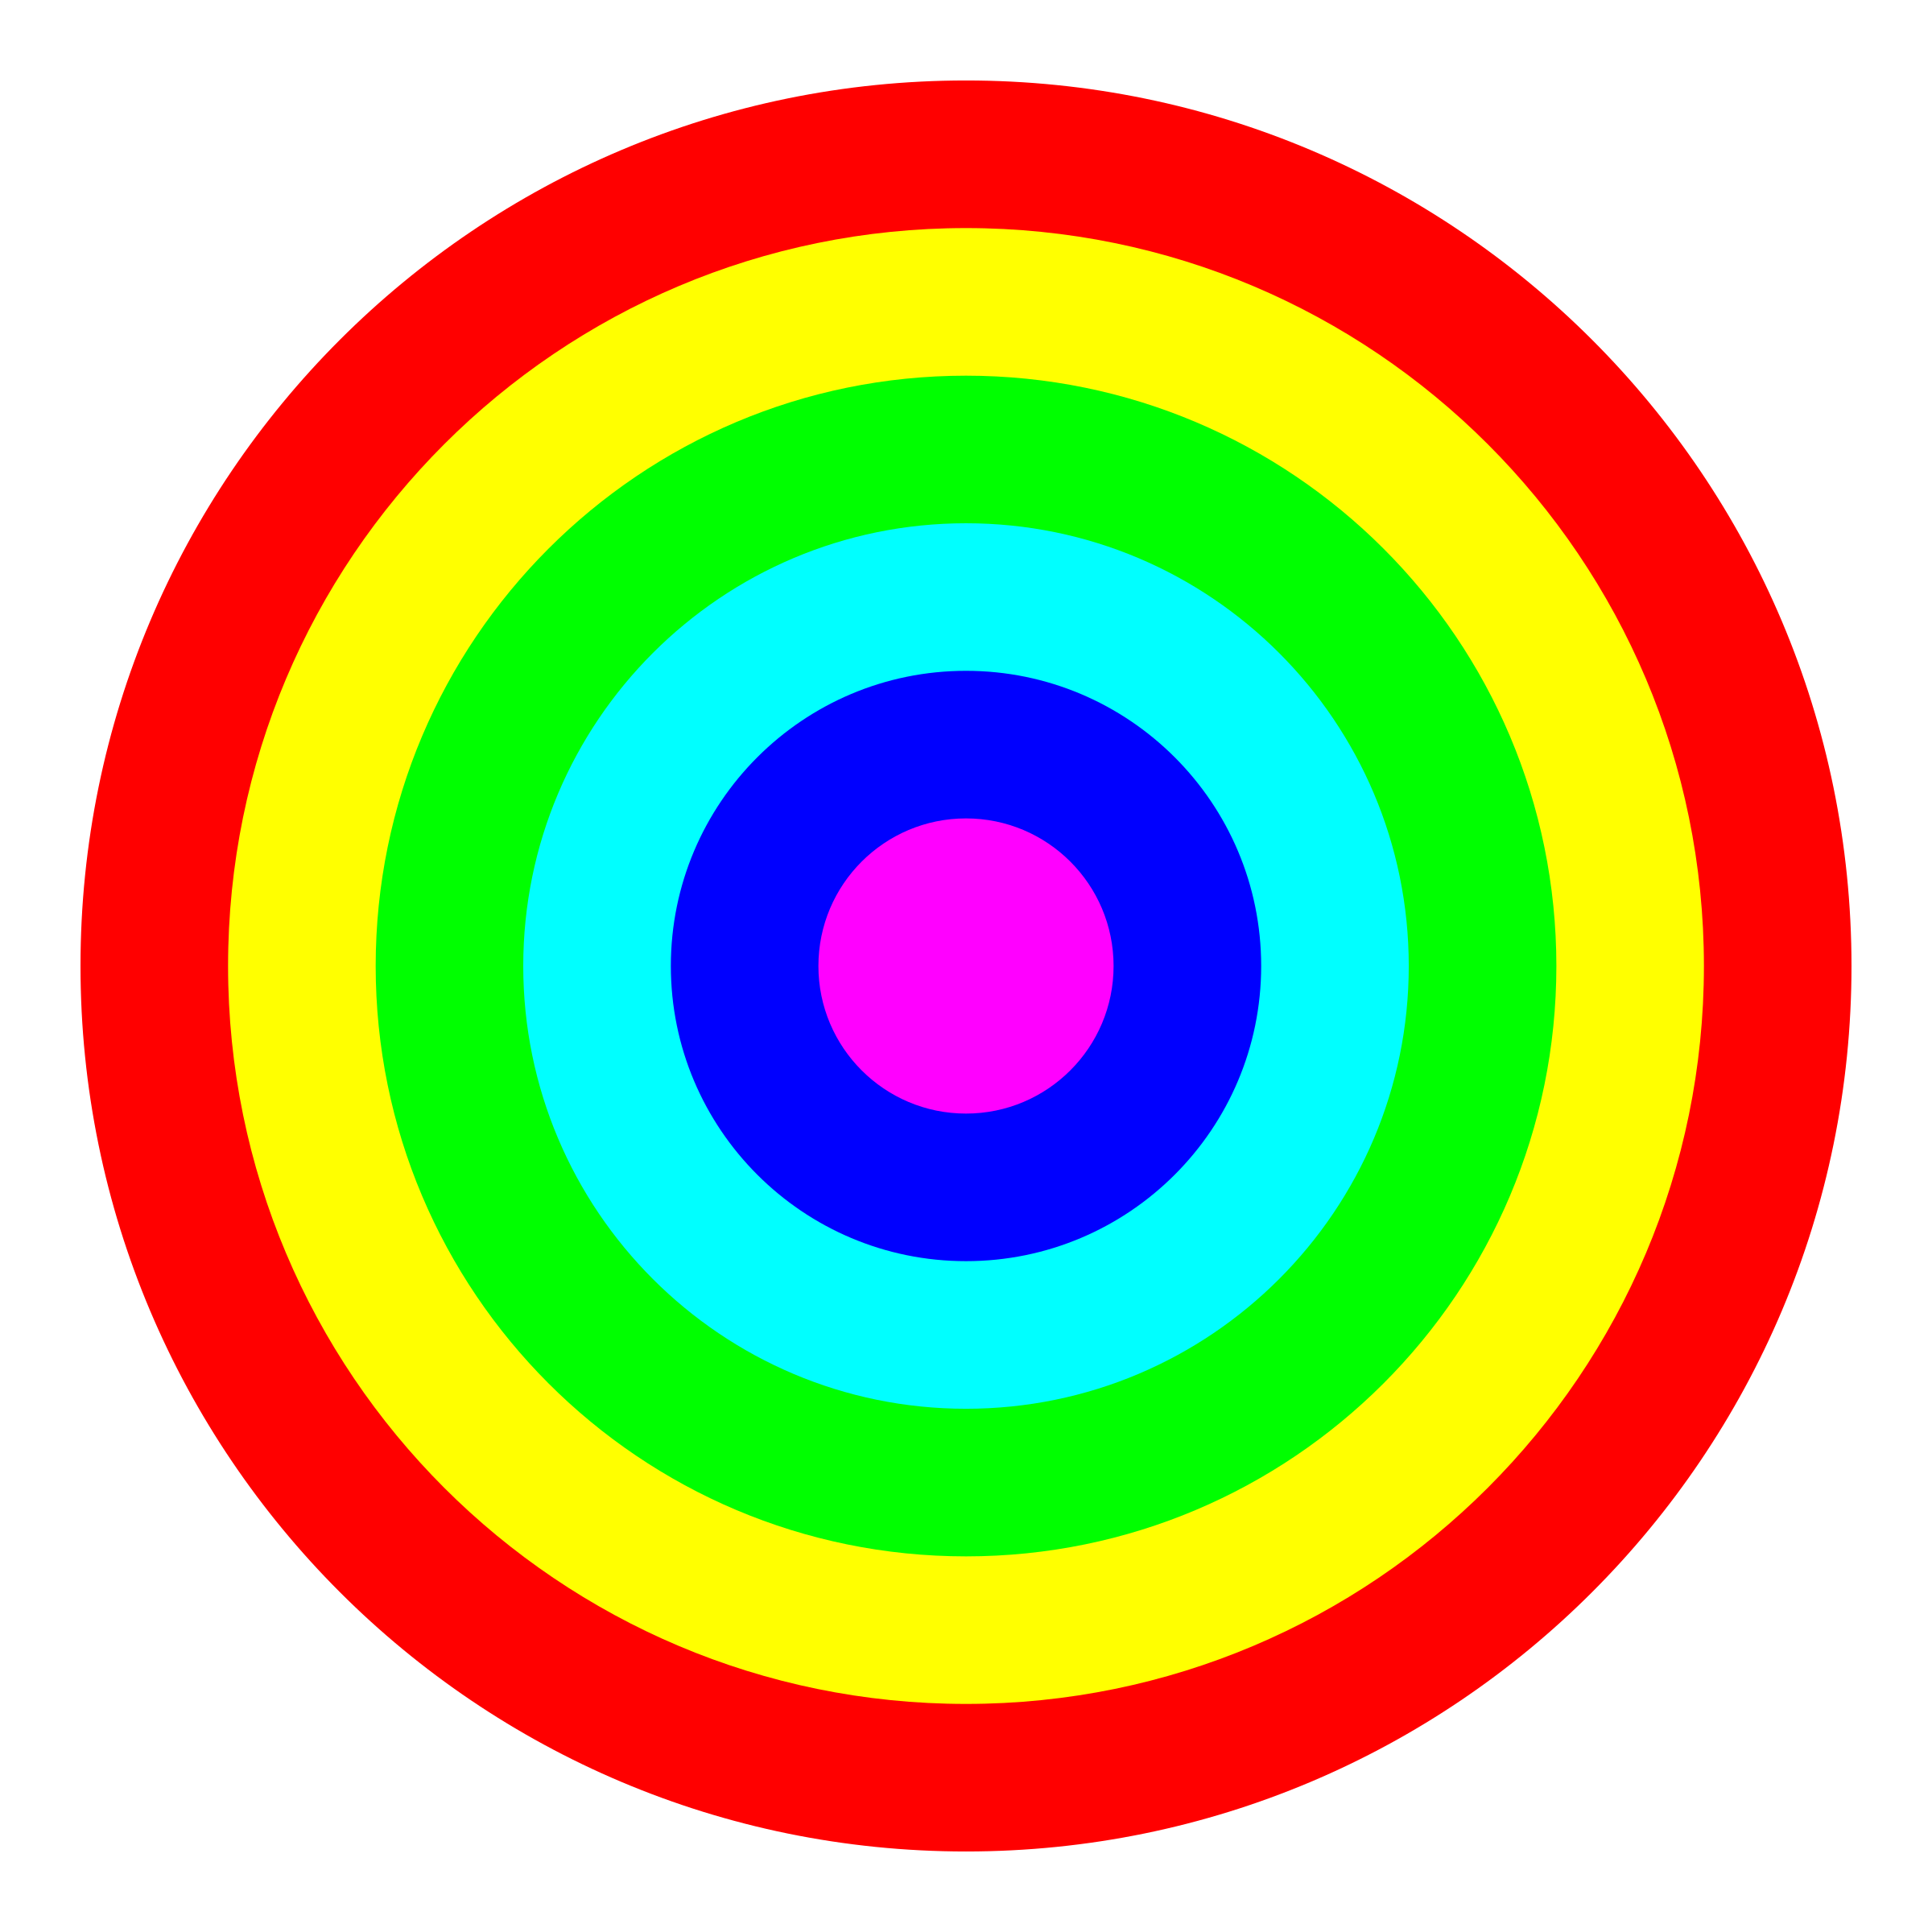 banner transparent library 6 clipart circle. Rainbow target color big